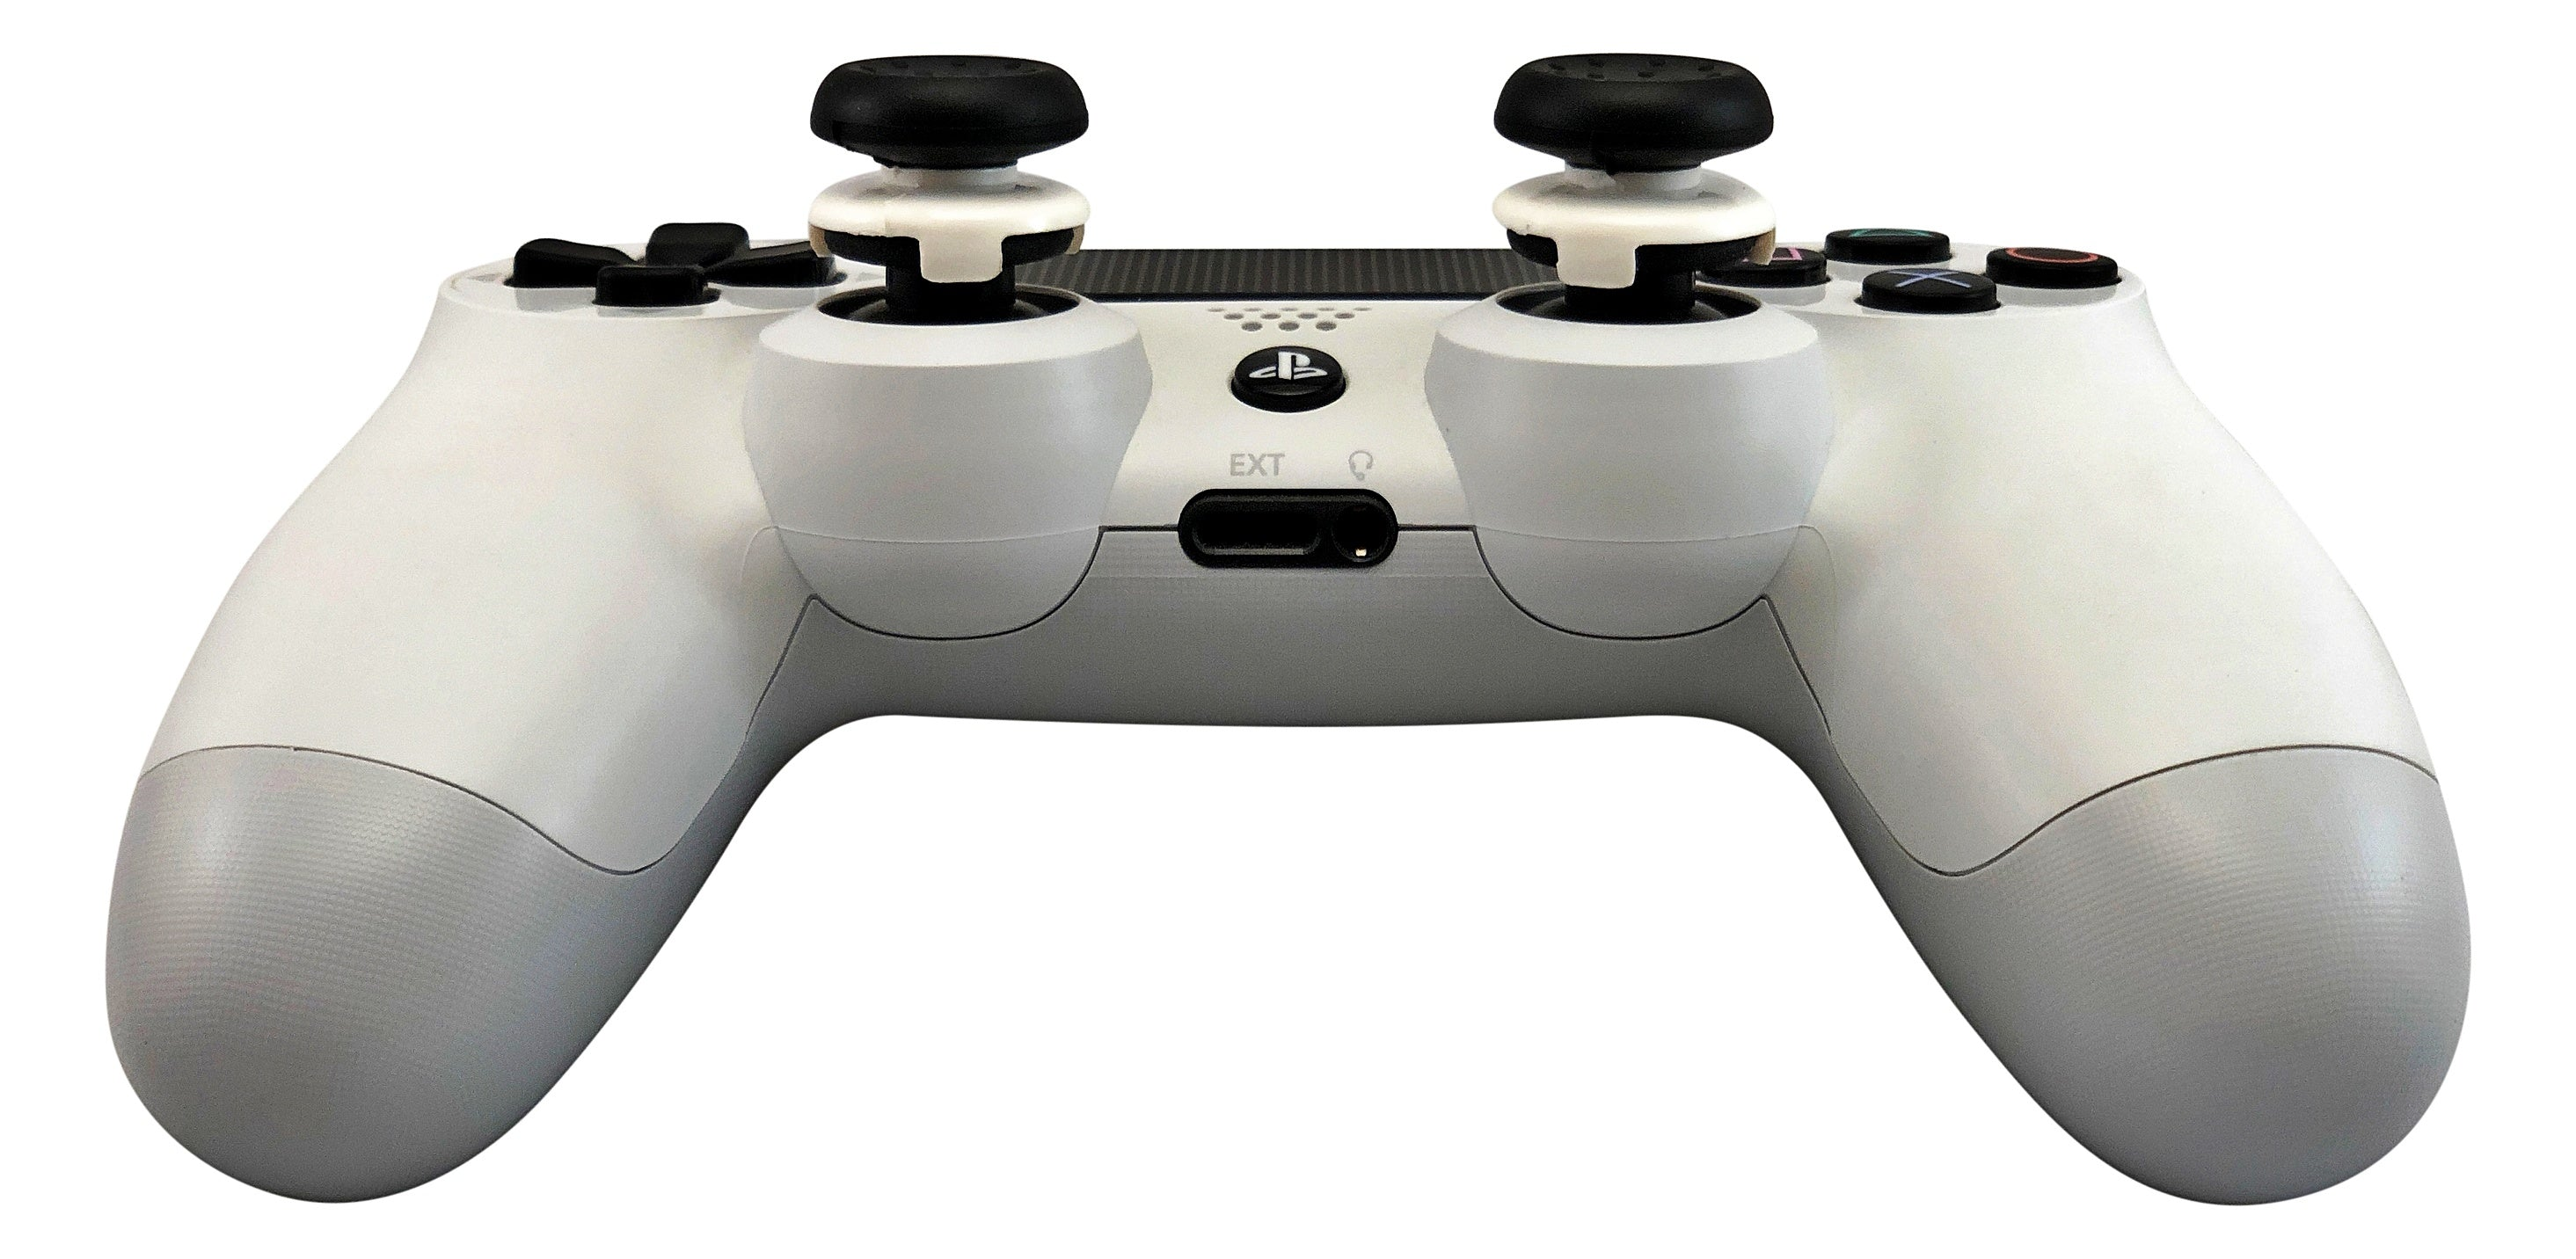 Weapons of Mass Destruction - PS4 Performance Triggers and Precision Thumbsticks - 2 Tall Stem Sticks - Black & White